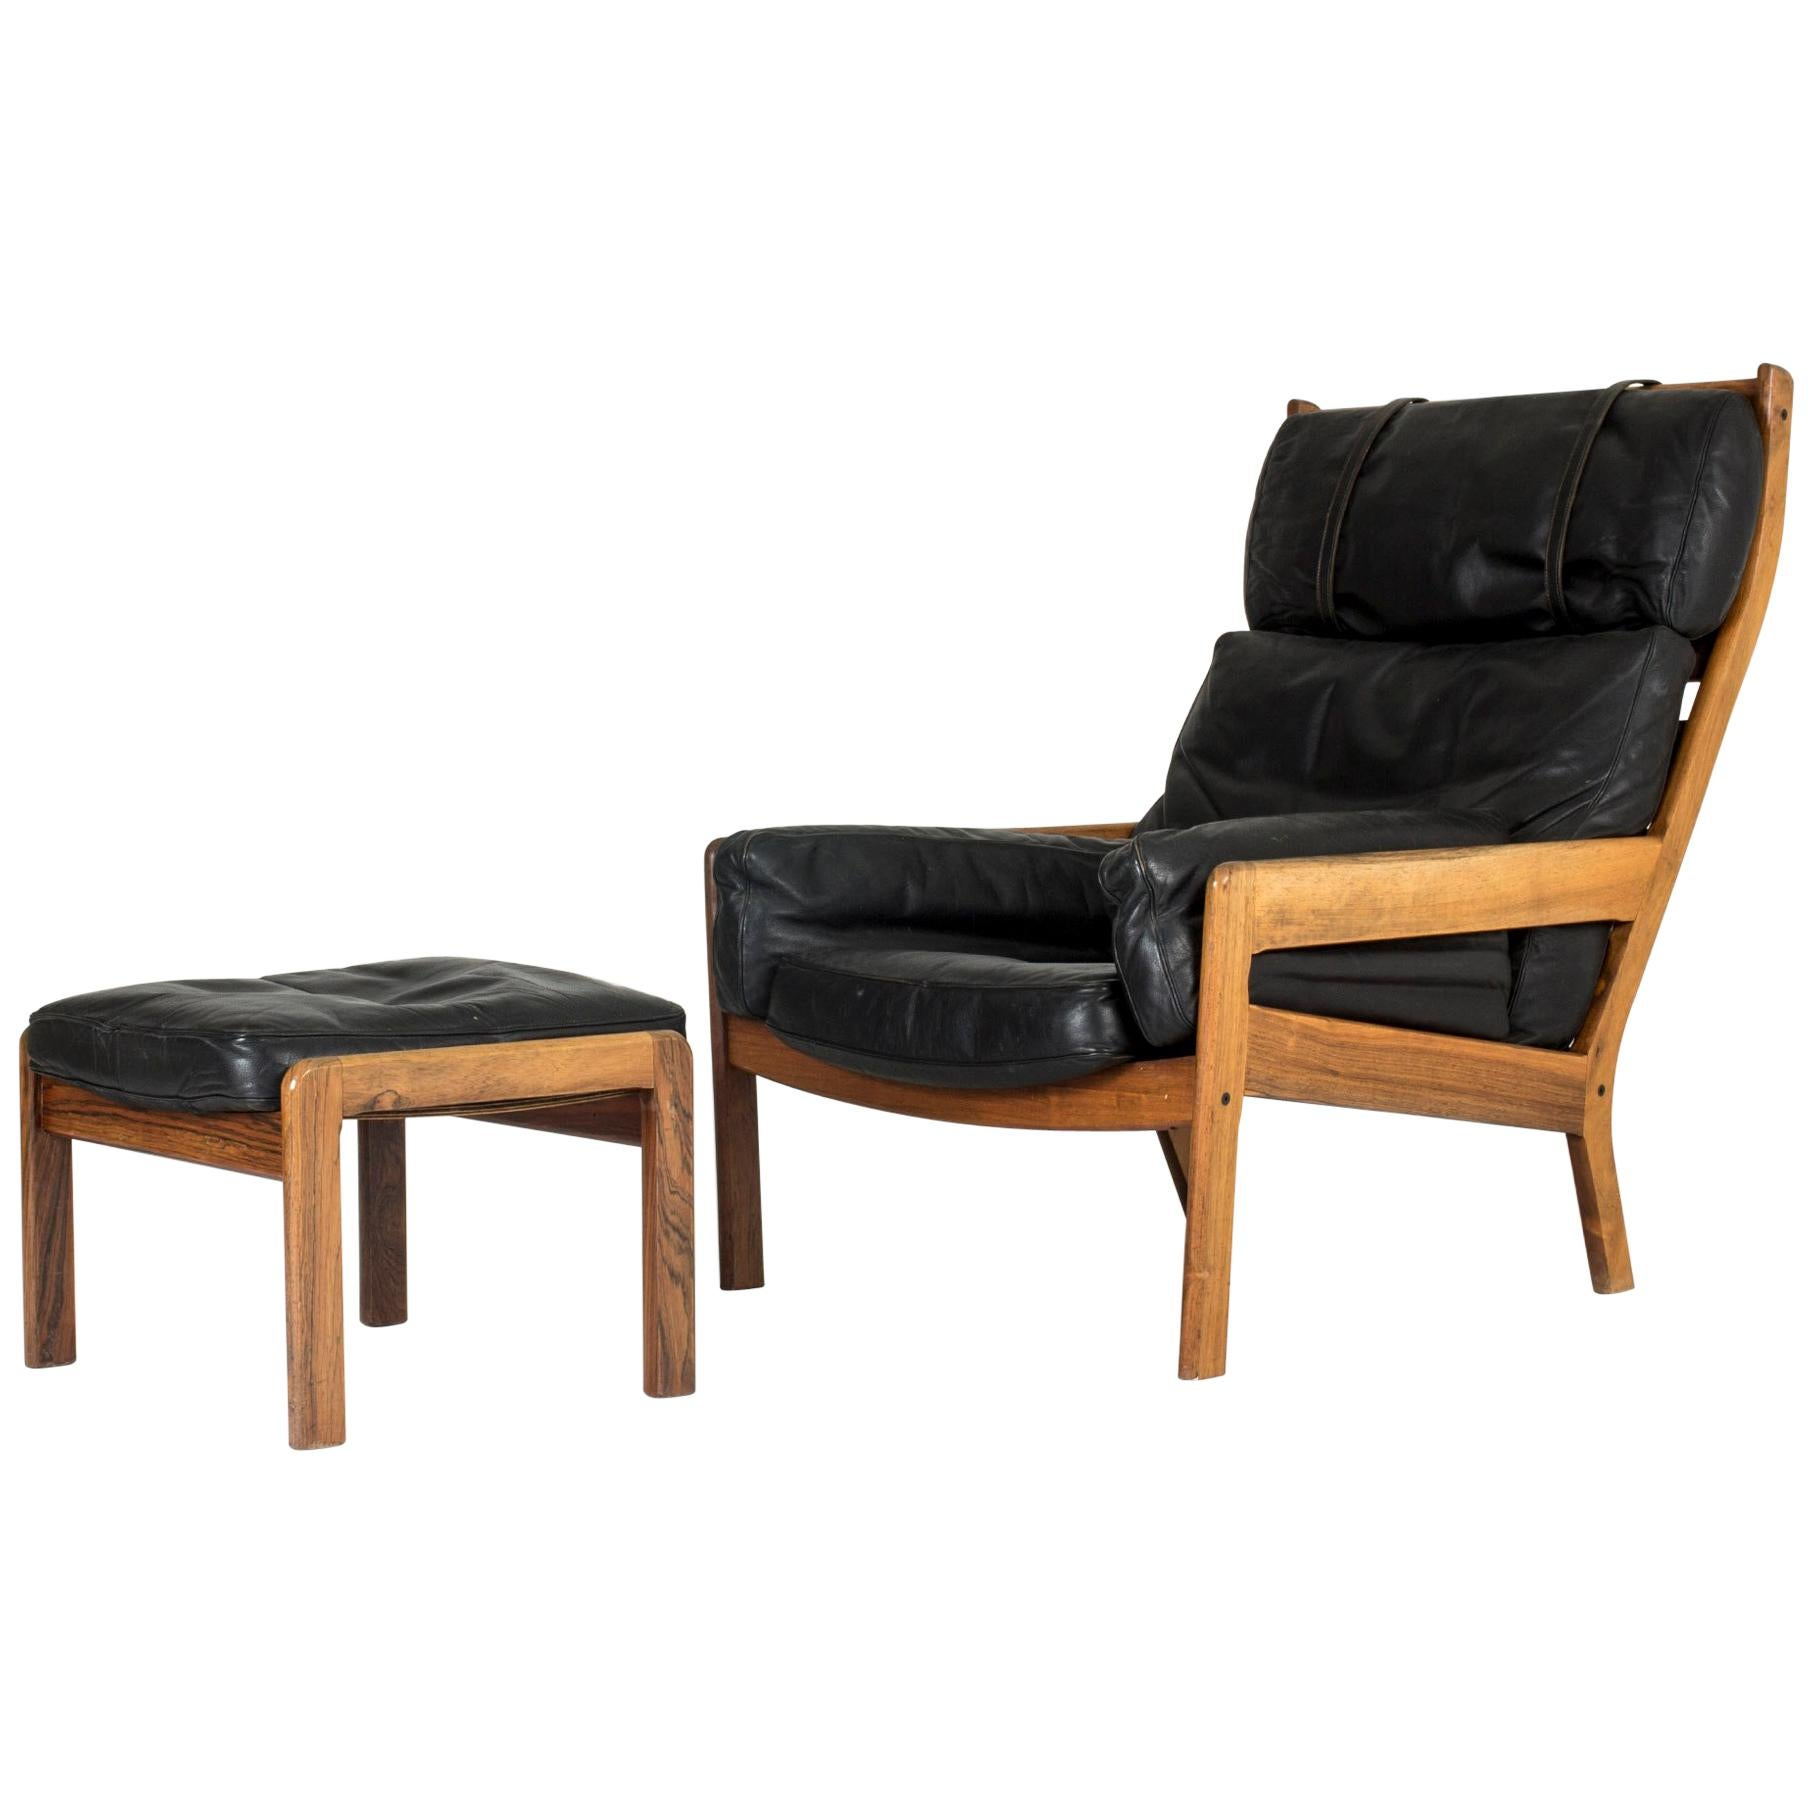 Cool Lounge Chairs Midcentury Swedish Lounge Chair With Ottoman